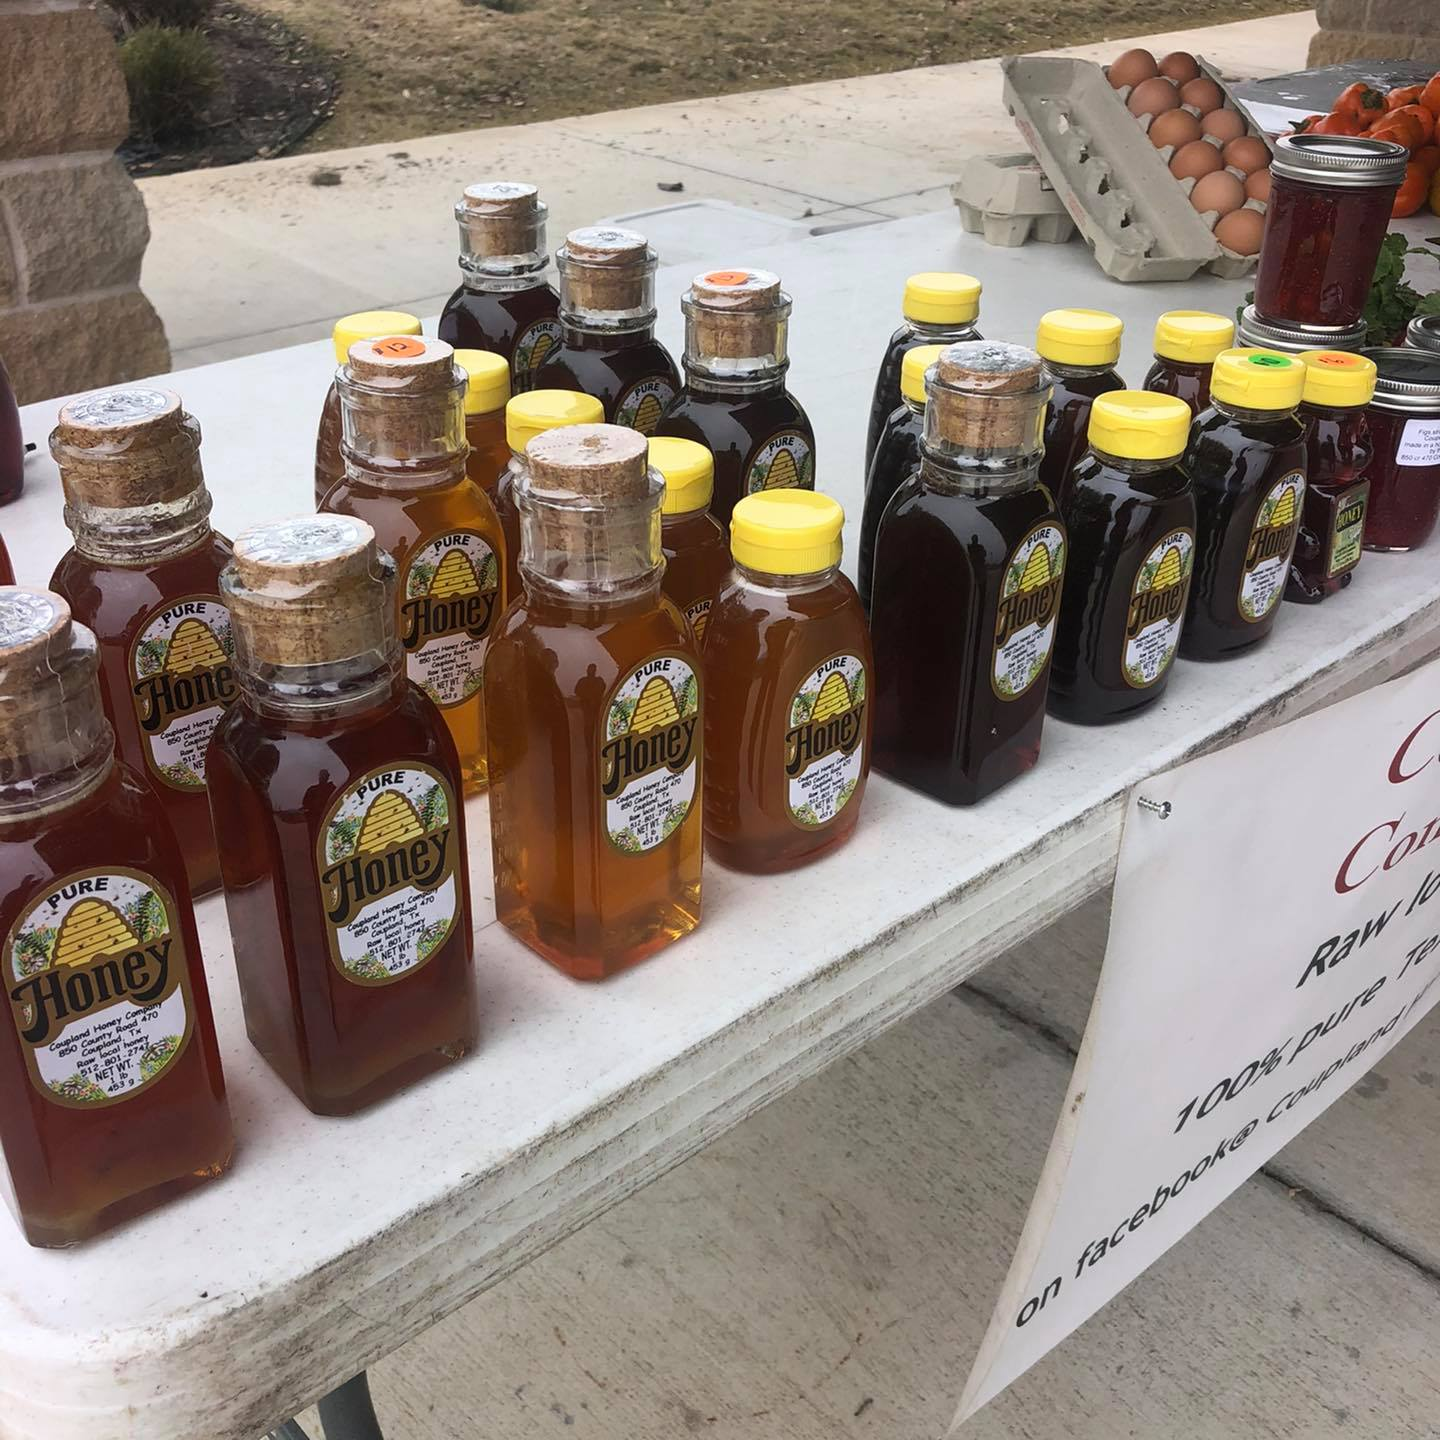 Coupland Honey Company display of honey